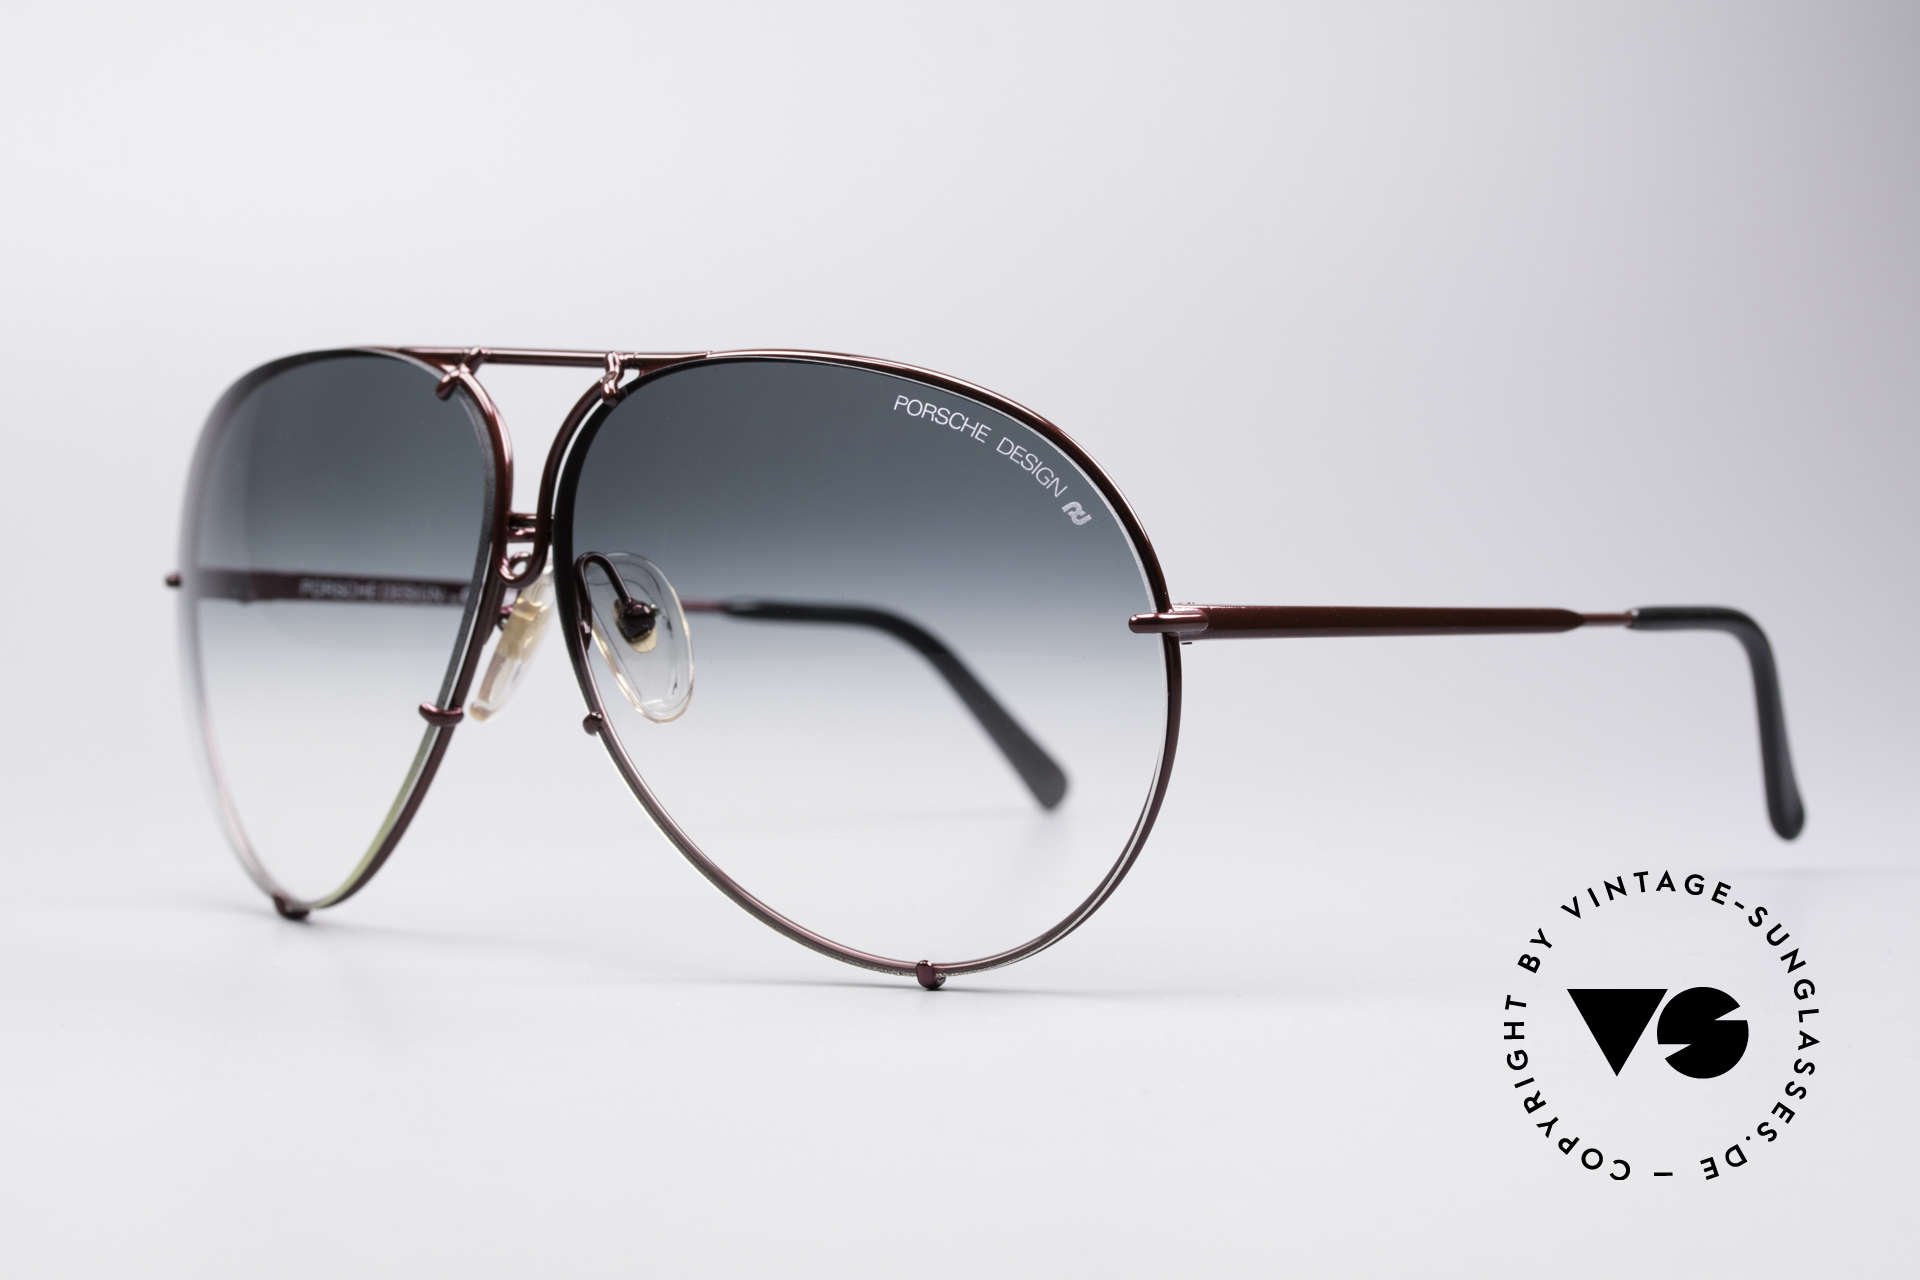 Porsche 5621 XL 80's Aviator Sunglasses, the legend with interchangeable lenses; true vintage, Made for Men and Women